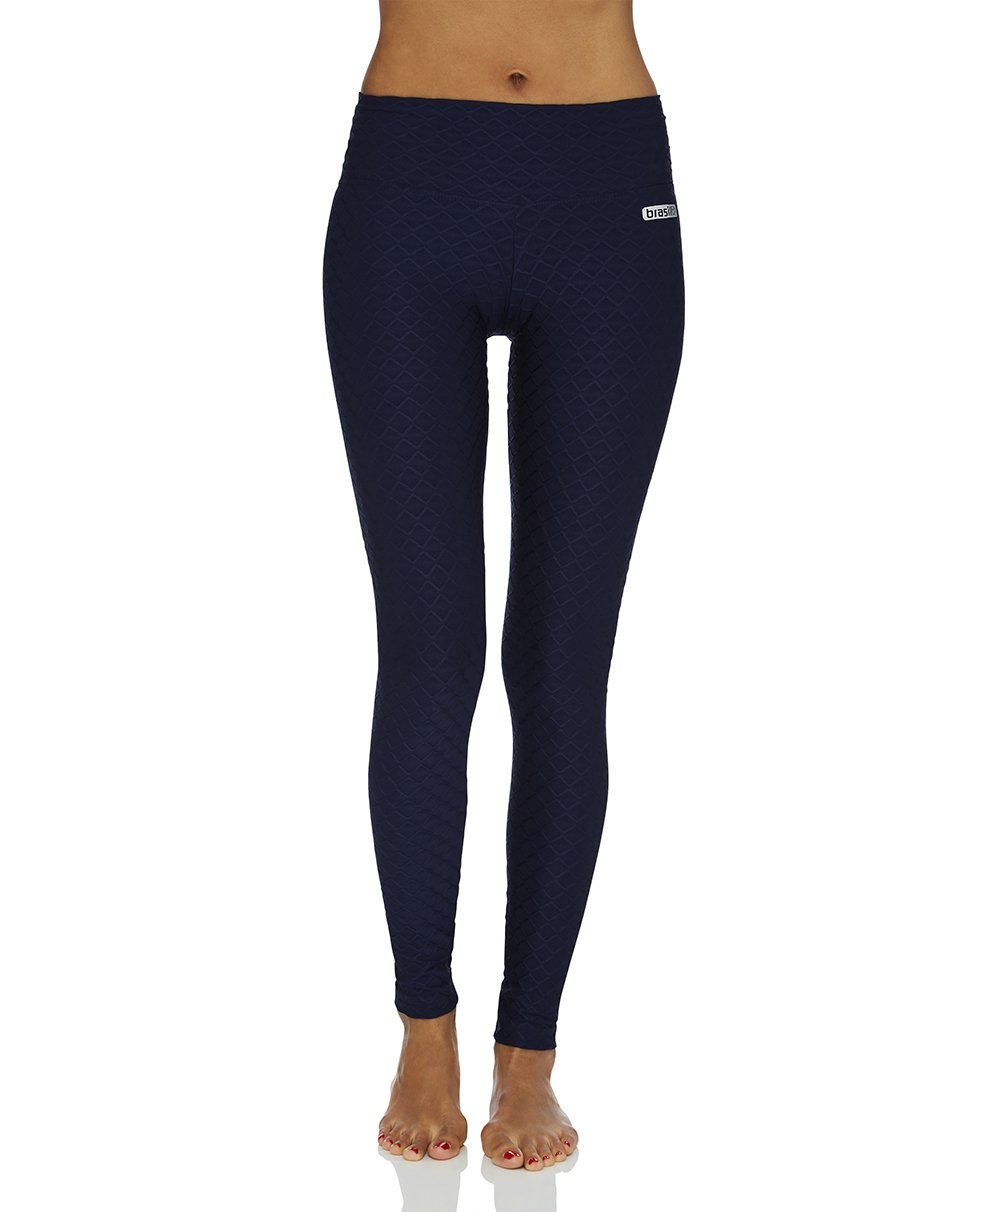 Wallpaper Full Length Legging - Navy